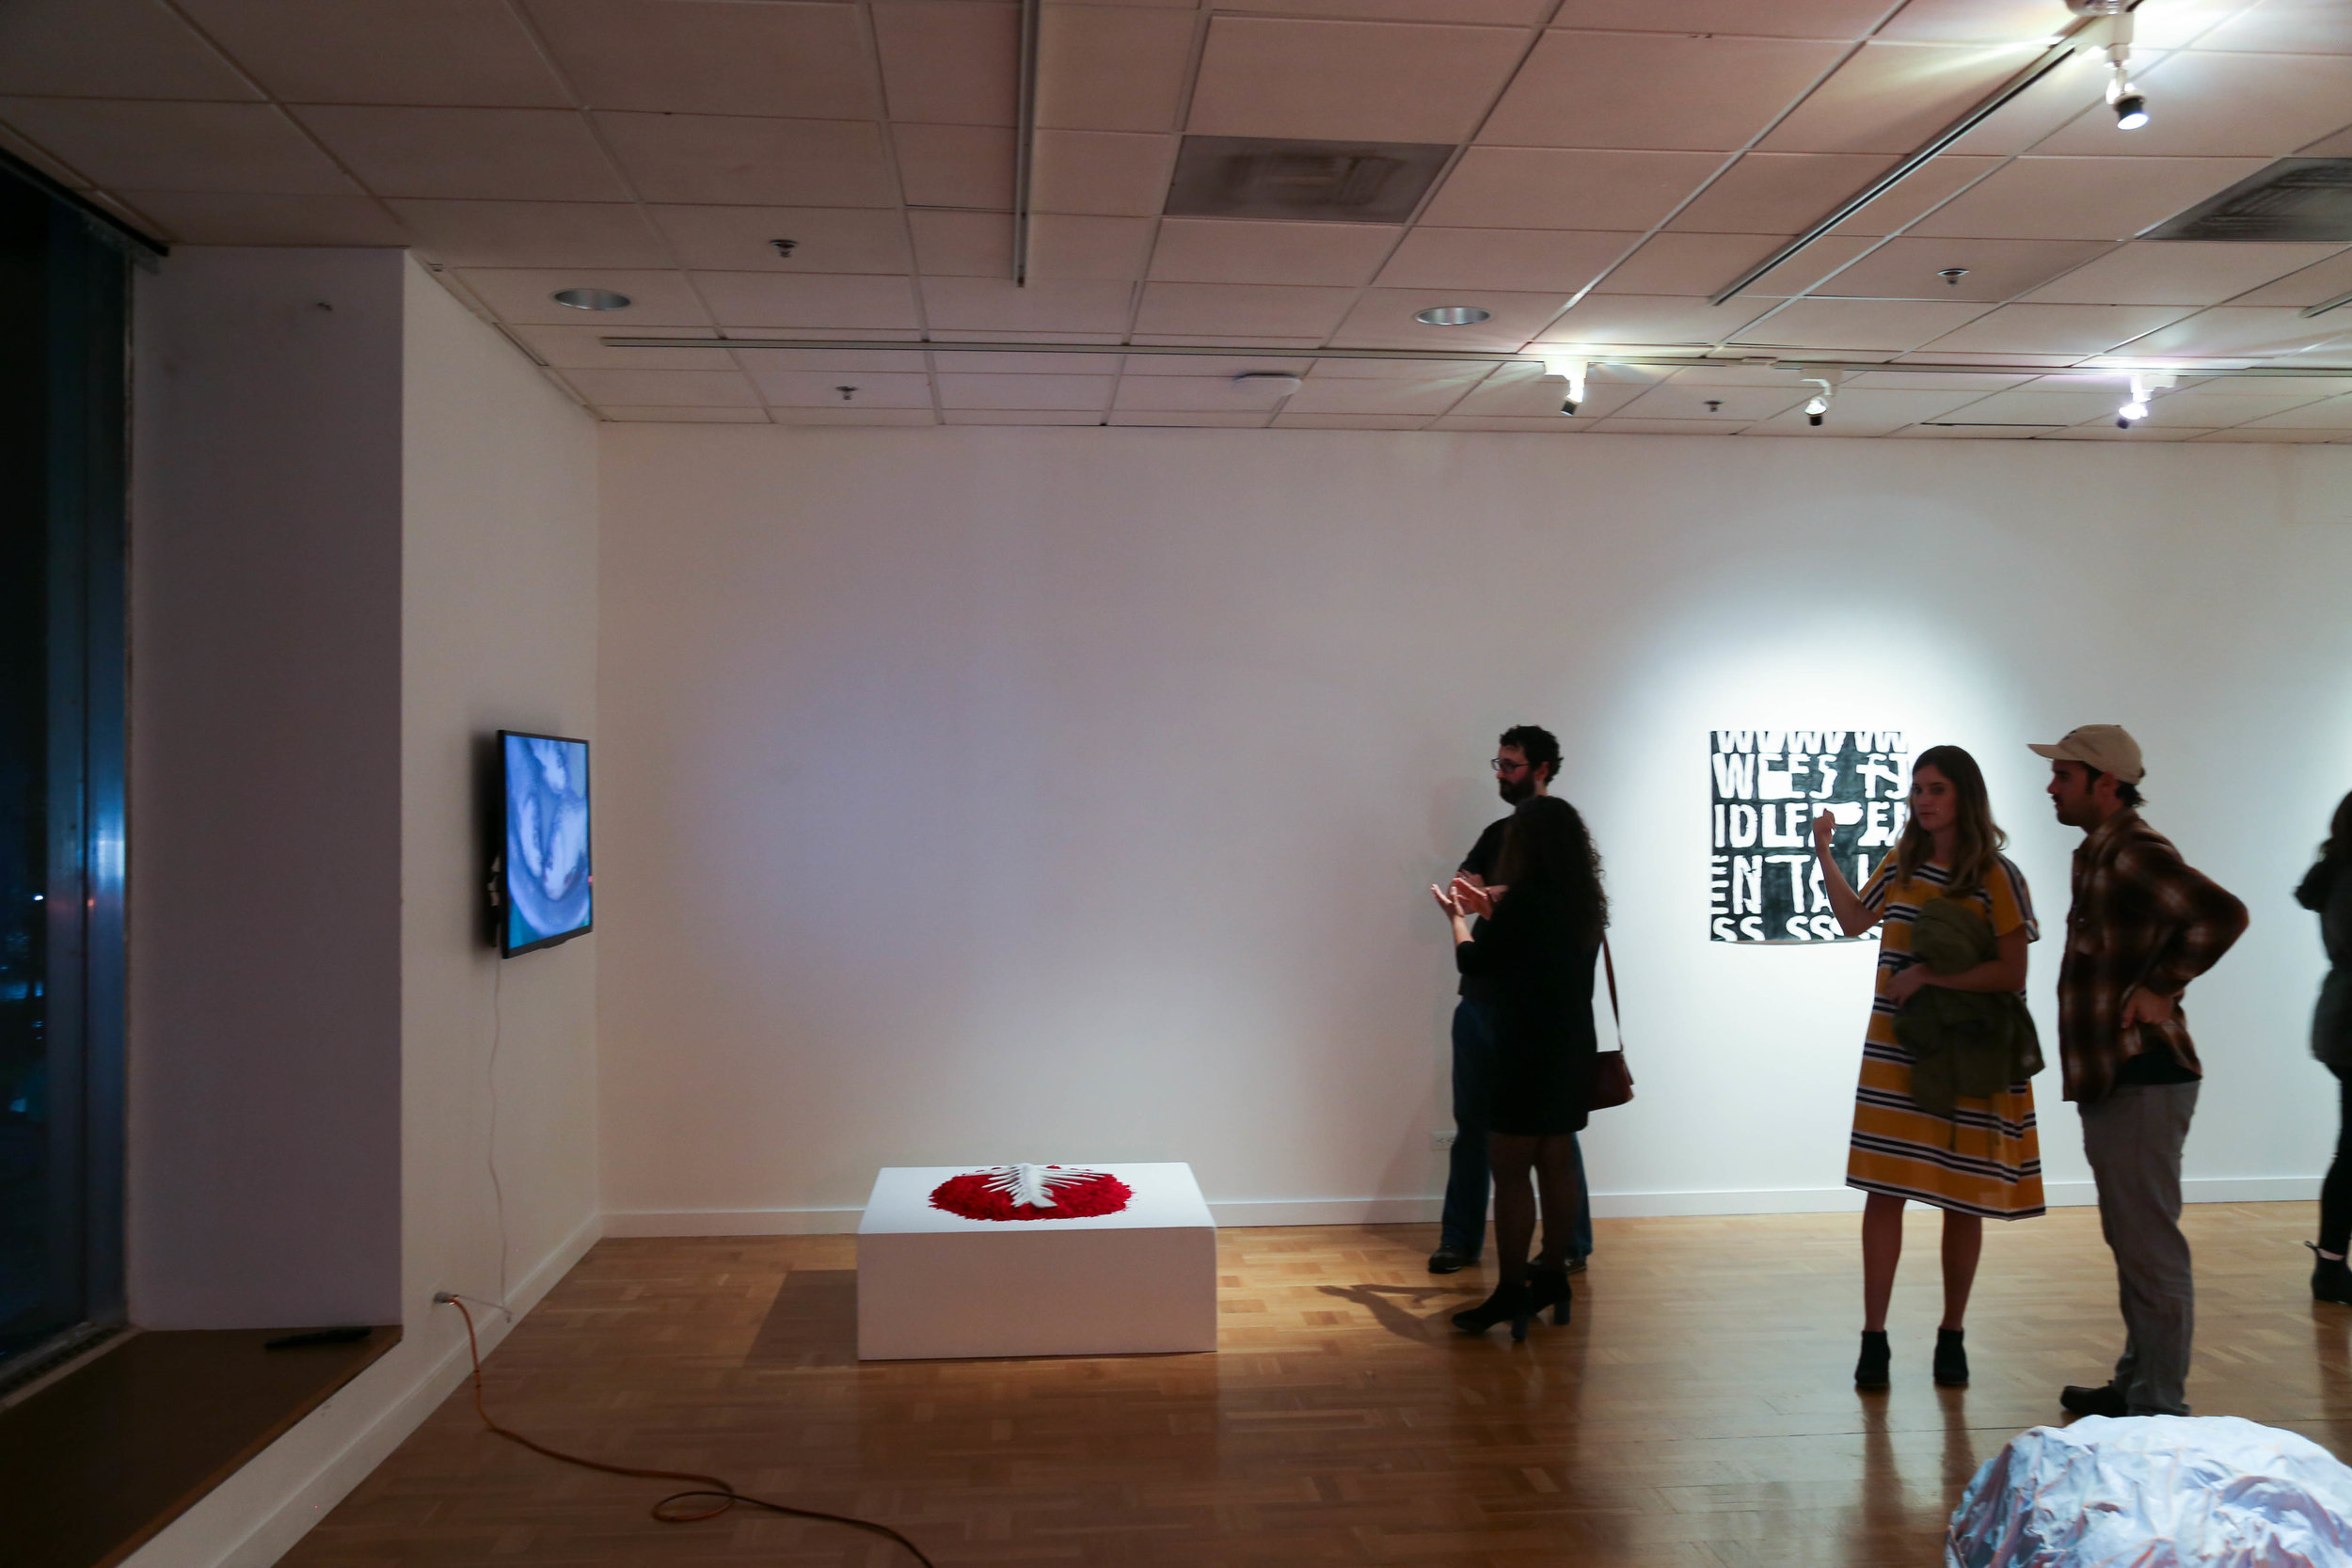 Work by Garima Thakur (video and sculpture) and Flynn Casey (painting)